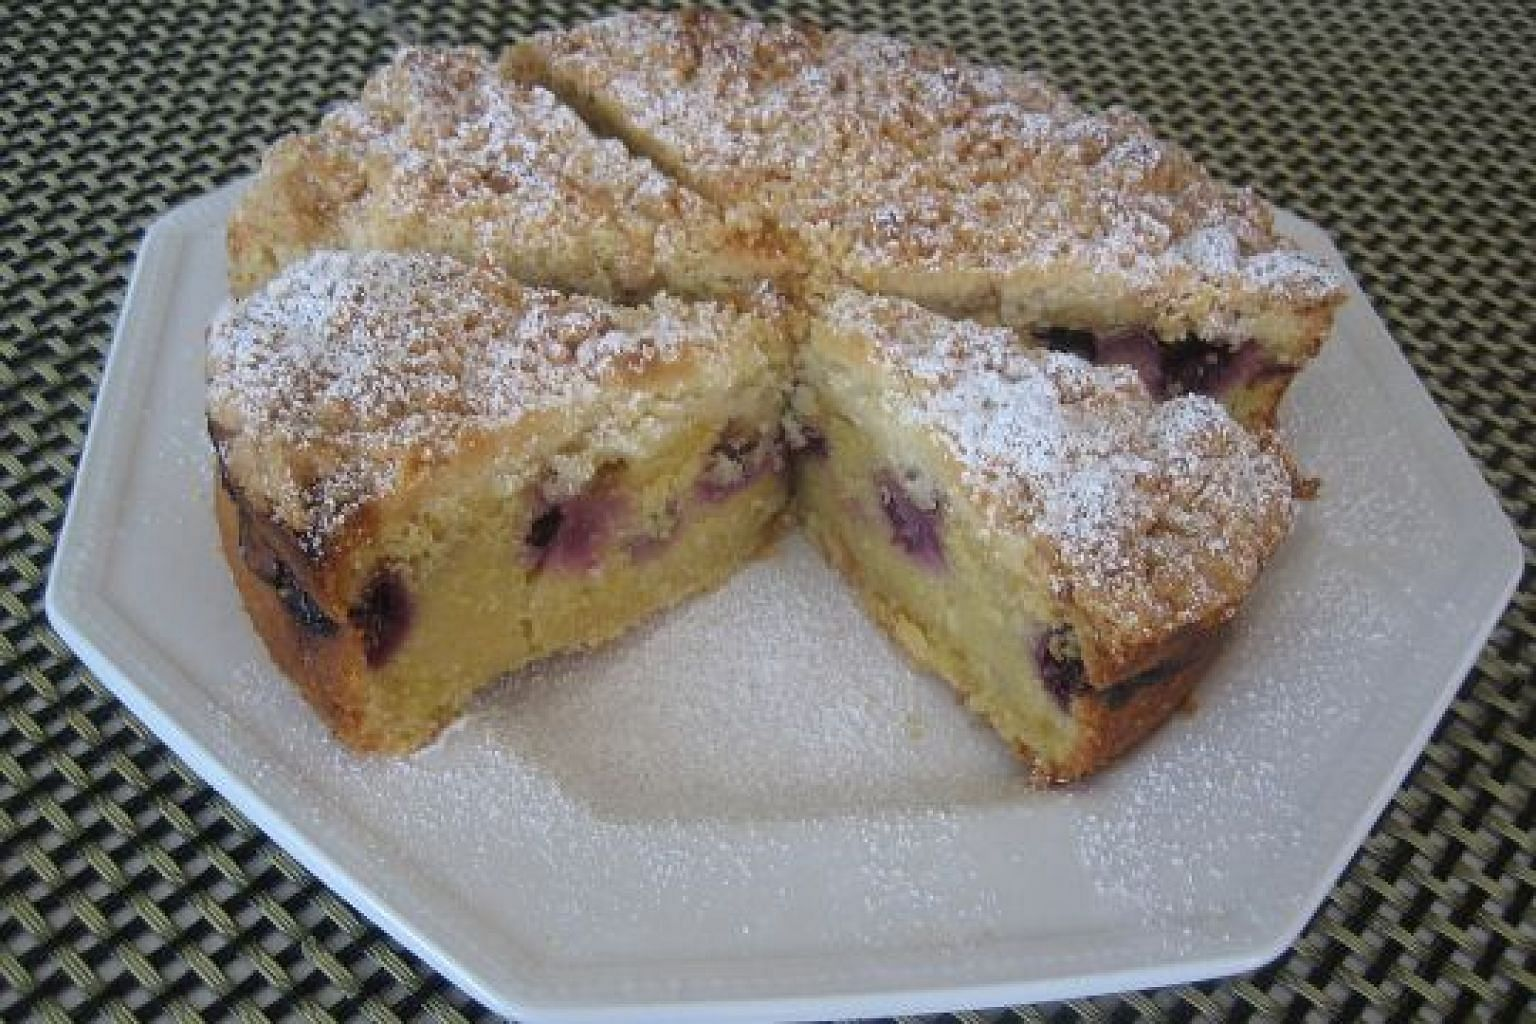 The polenta adds extra texture in the cake to complement the crumble topping.